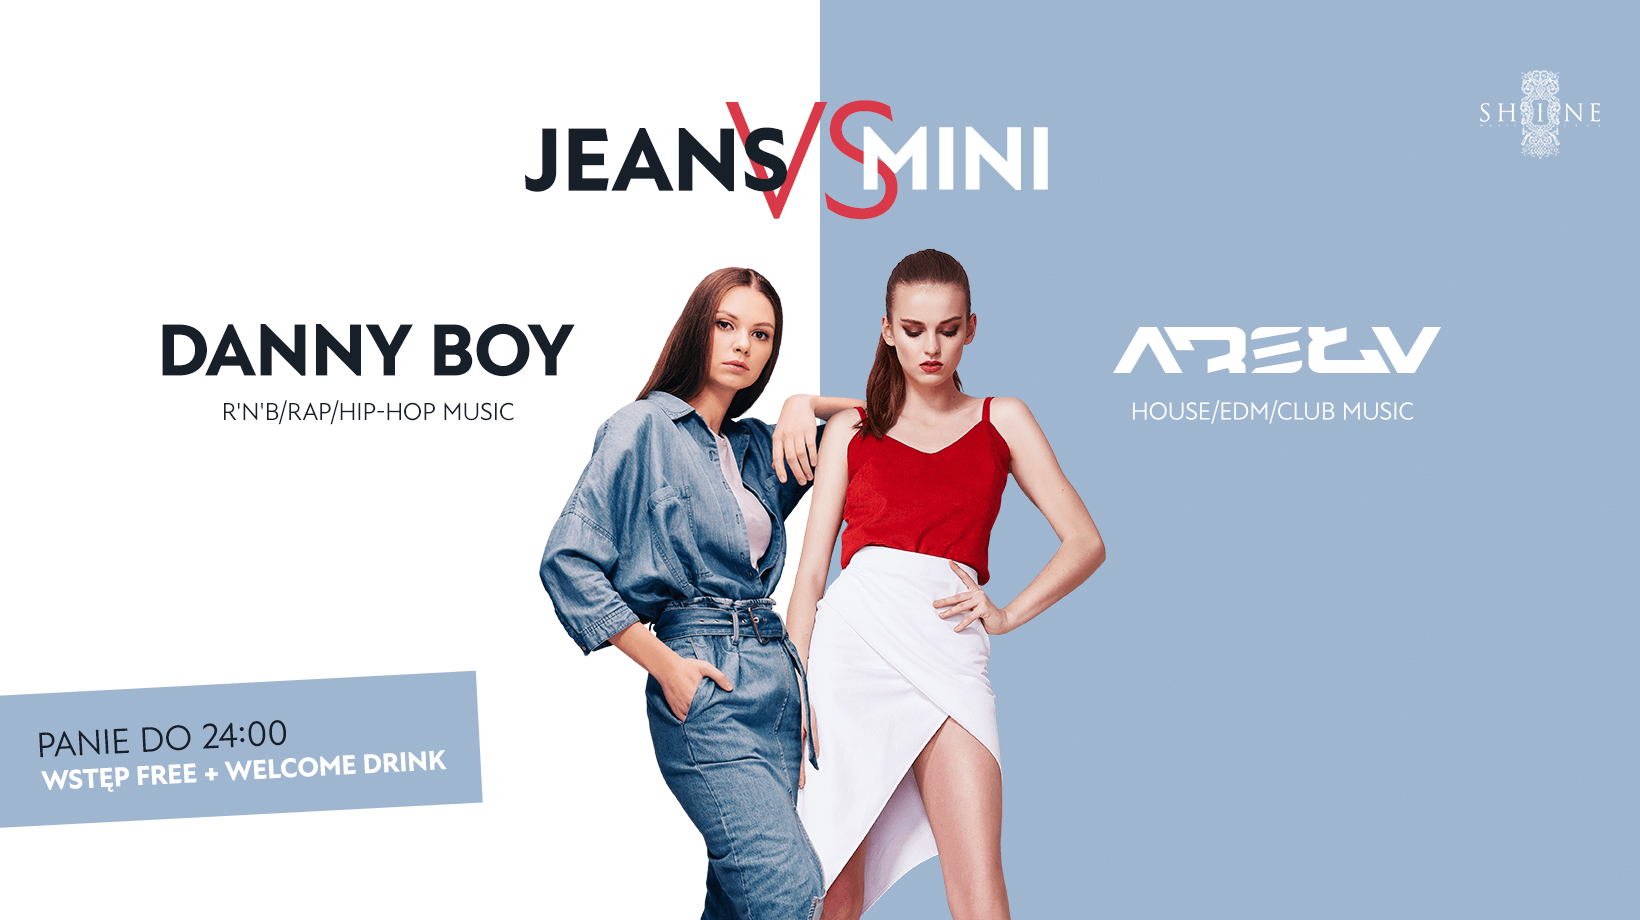 Jeans vs Mini // 20.09 // Panie do 24:00 - Wstęp + Drink